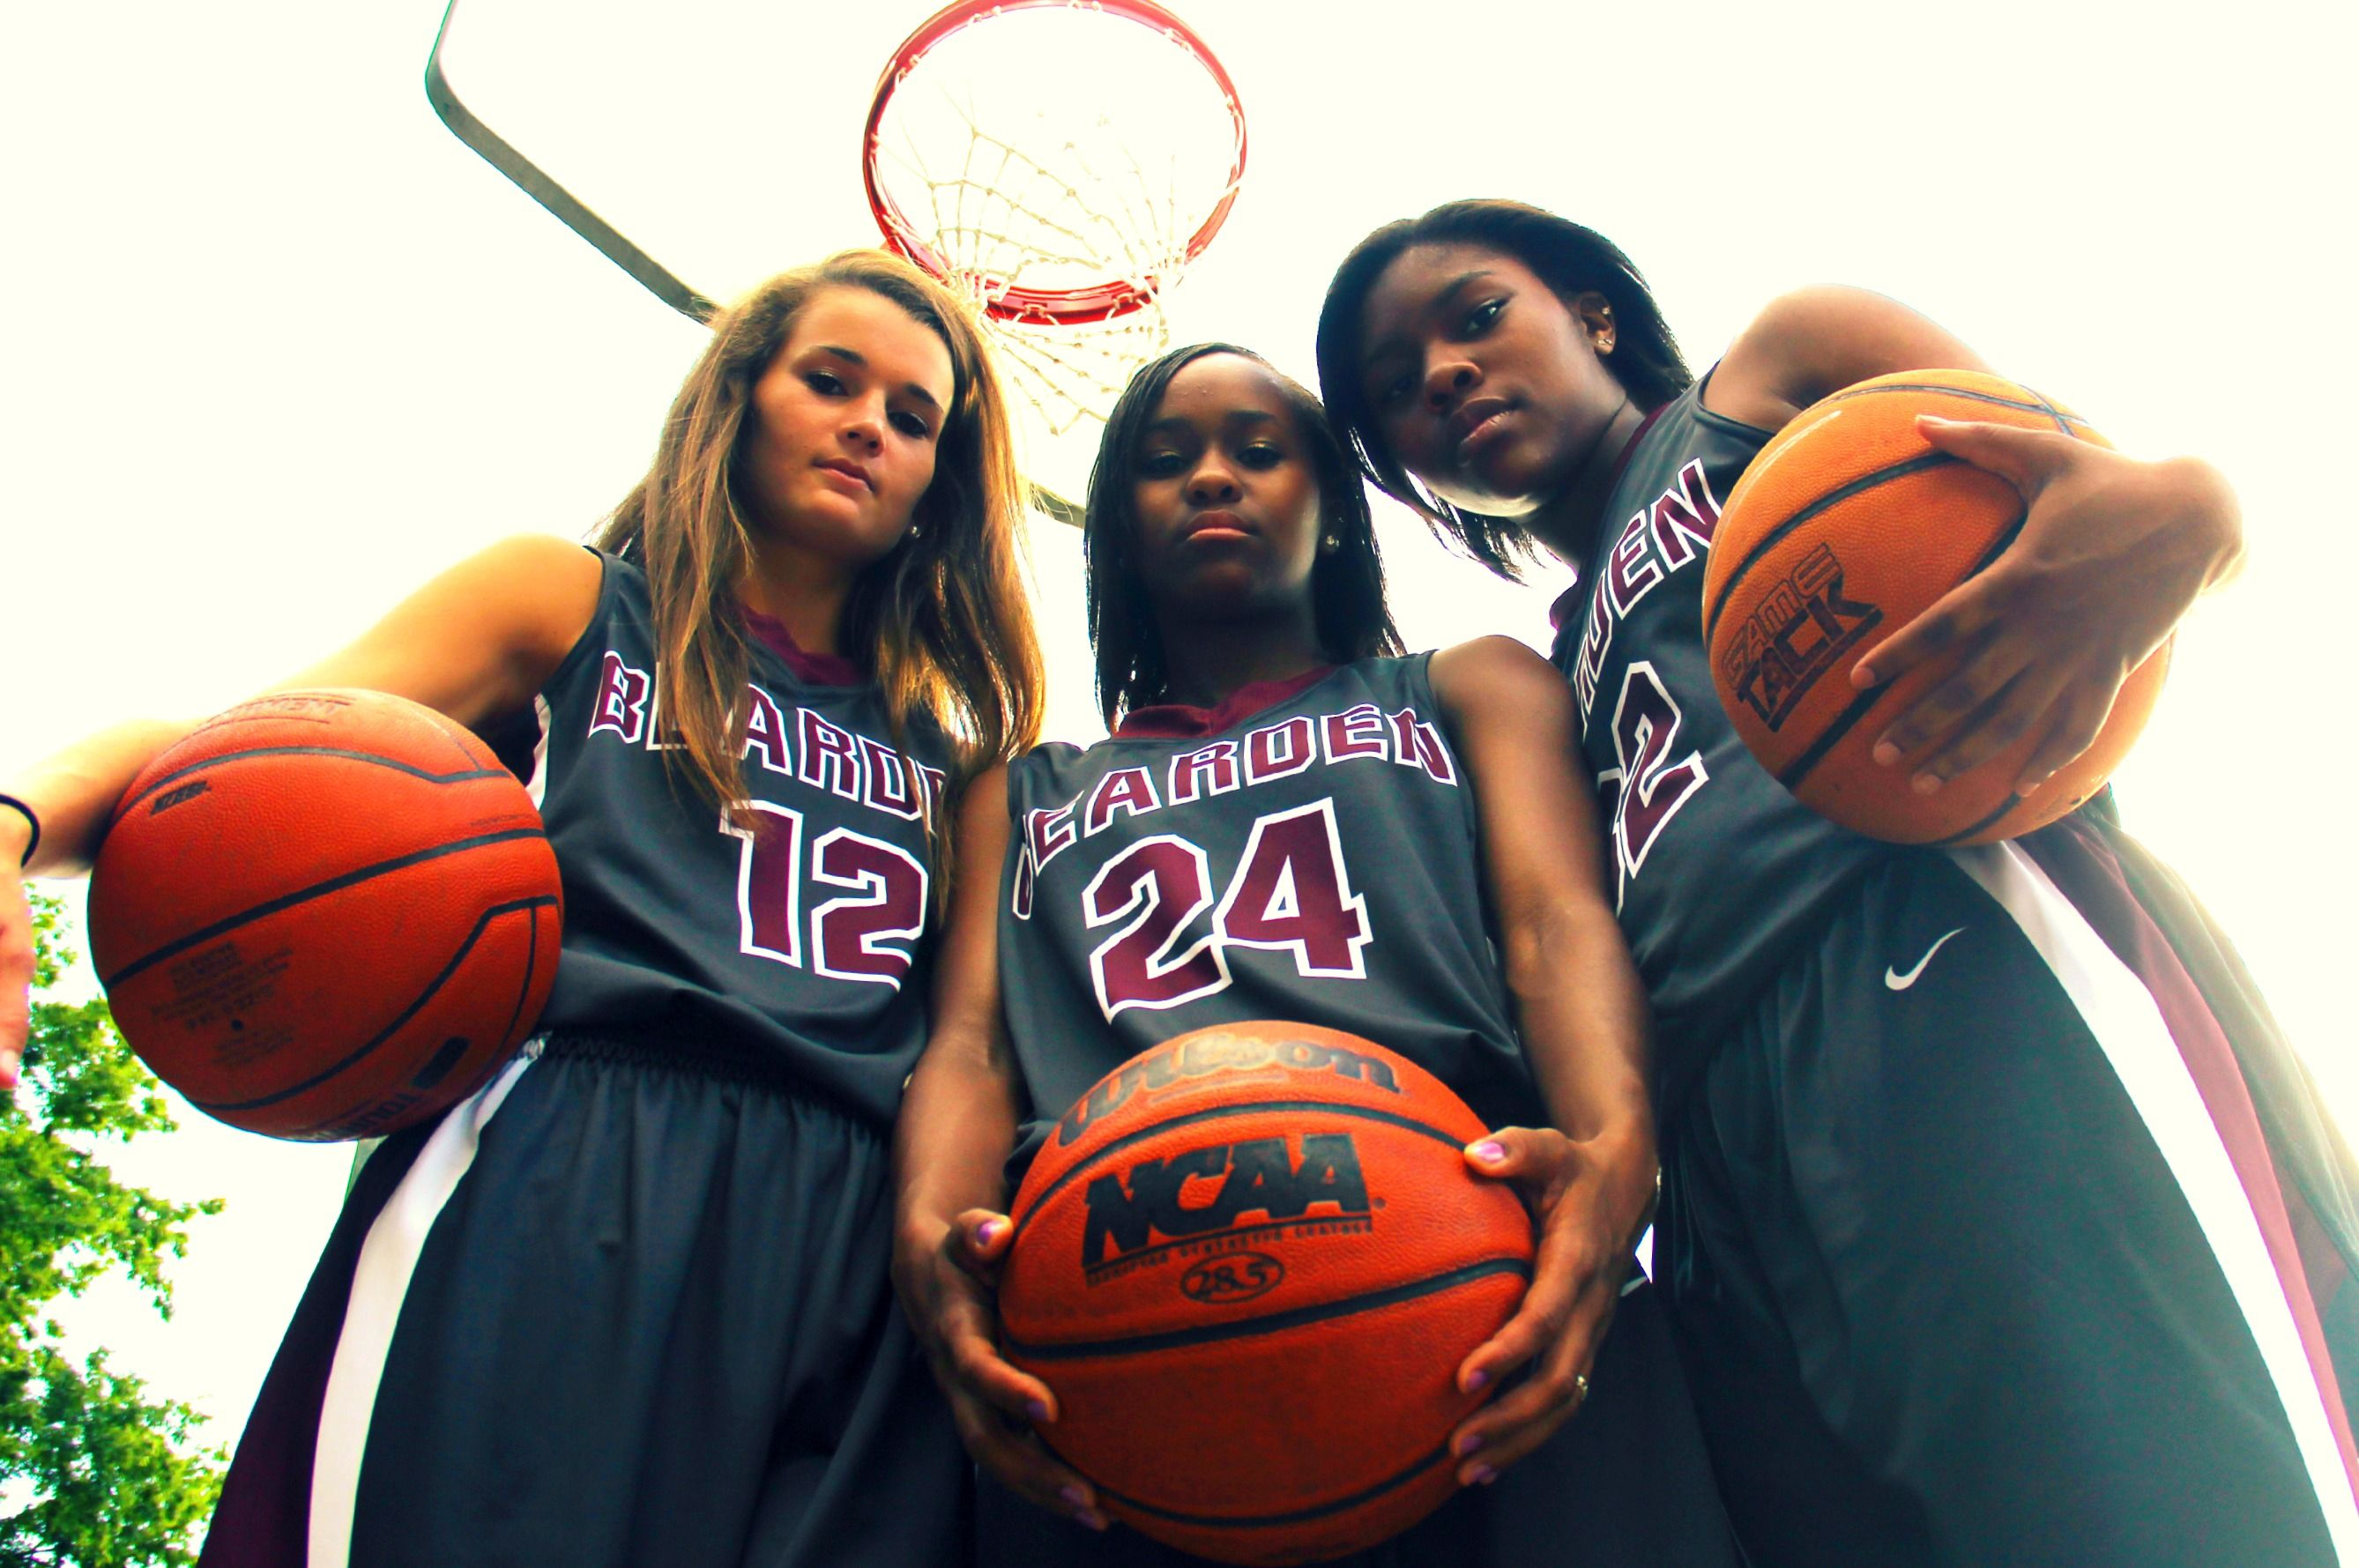 Girls Basketball Players - Senior Portrait Session. State bound!